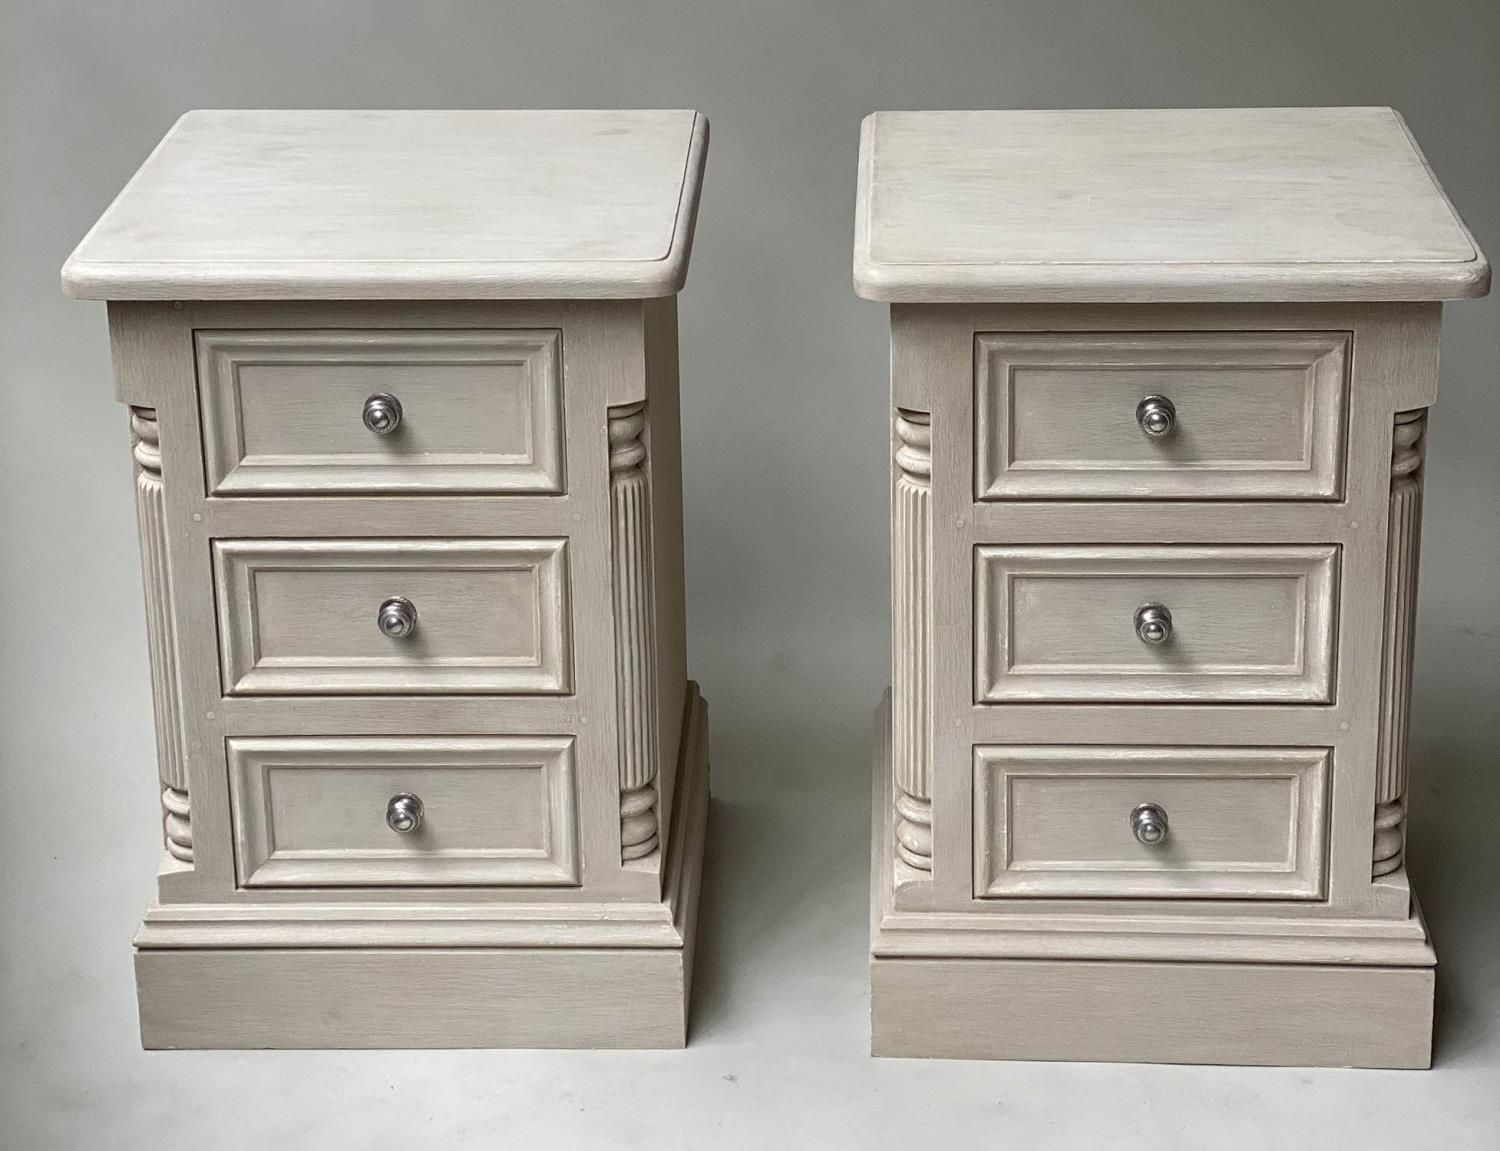 BEDSIDE CHESTS, a pair, French style grey painted, each with three drawers, 49cm x 47cm x 76cm H. ( - Image 6 of 7